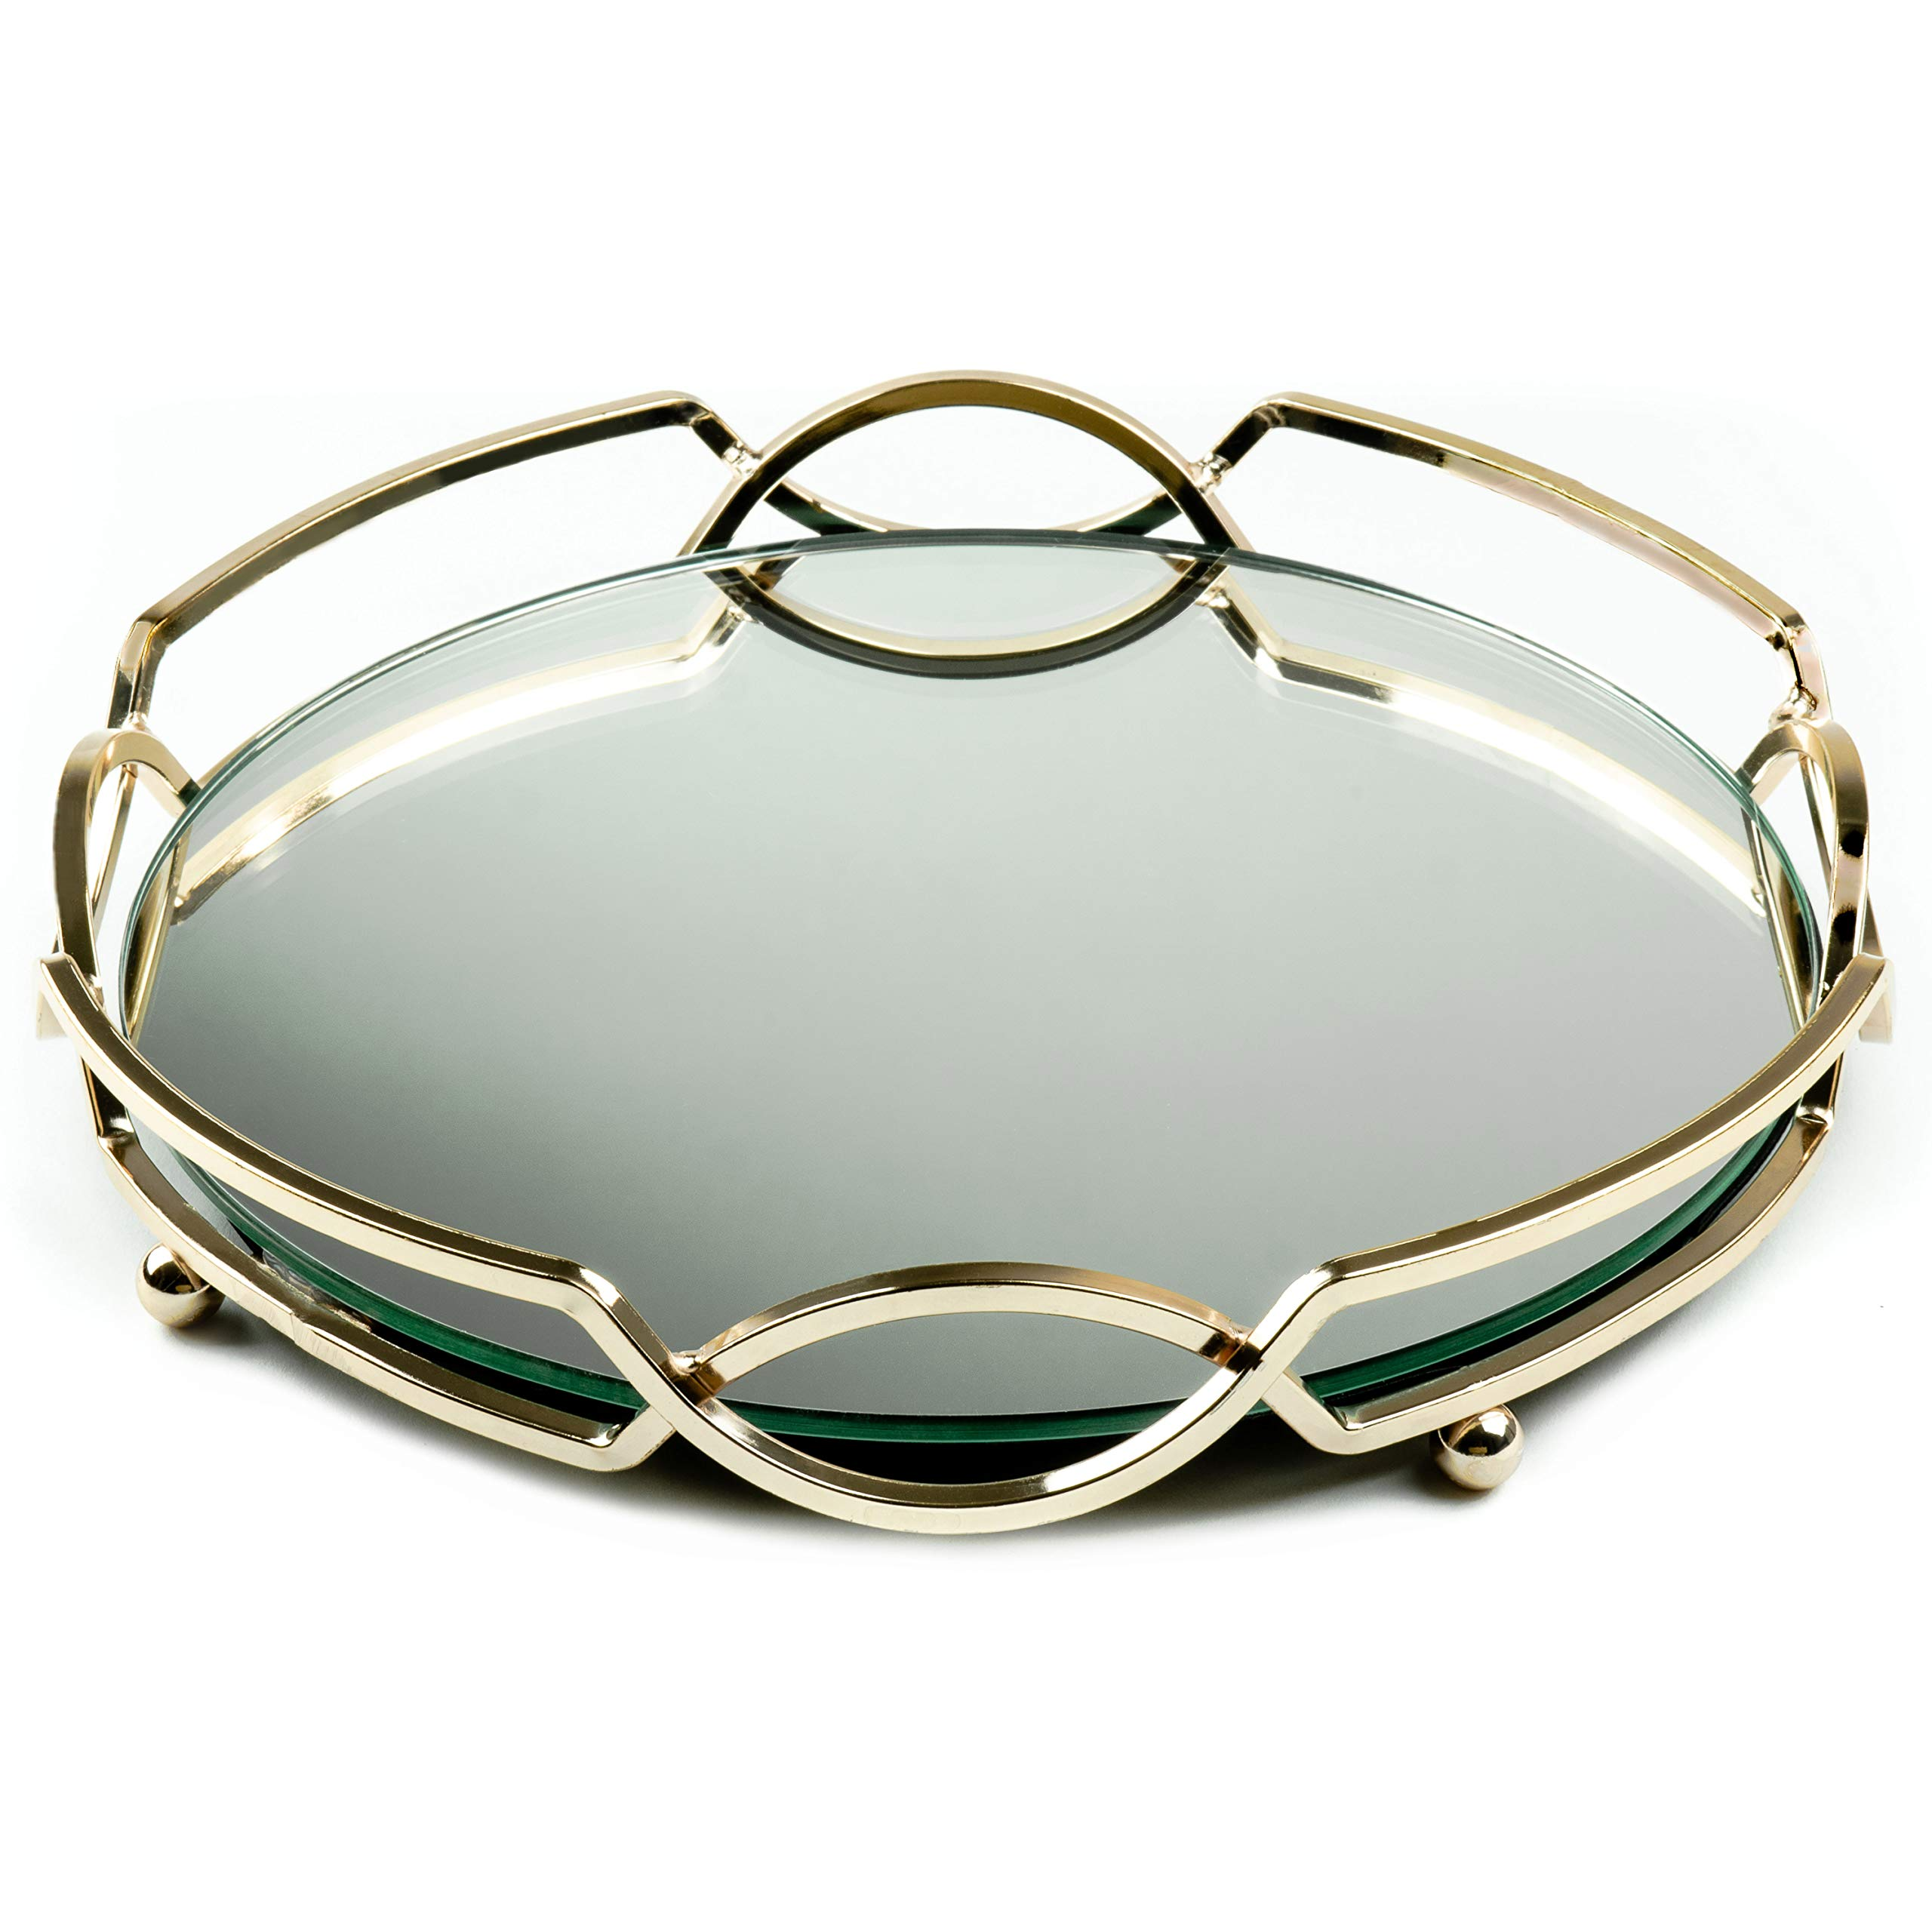 lucaslo Set of Glamor Gold Vanity Mirror Tray and Pocket Makeup Mirror, Coffee Table Tray, Living Room Storage, Bathroom Decor, Accent Table Tray, Perfume Round Serving Tray, Wedding Centerpieces by lucaslo